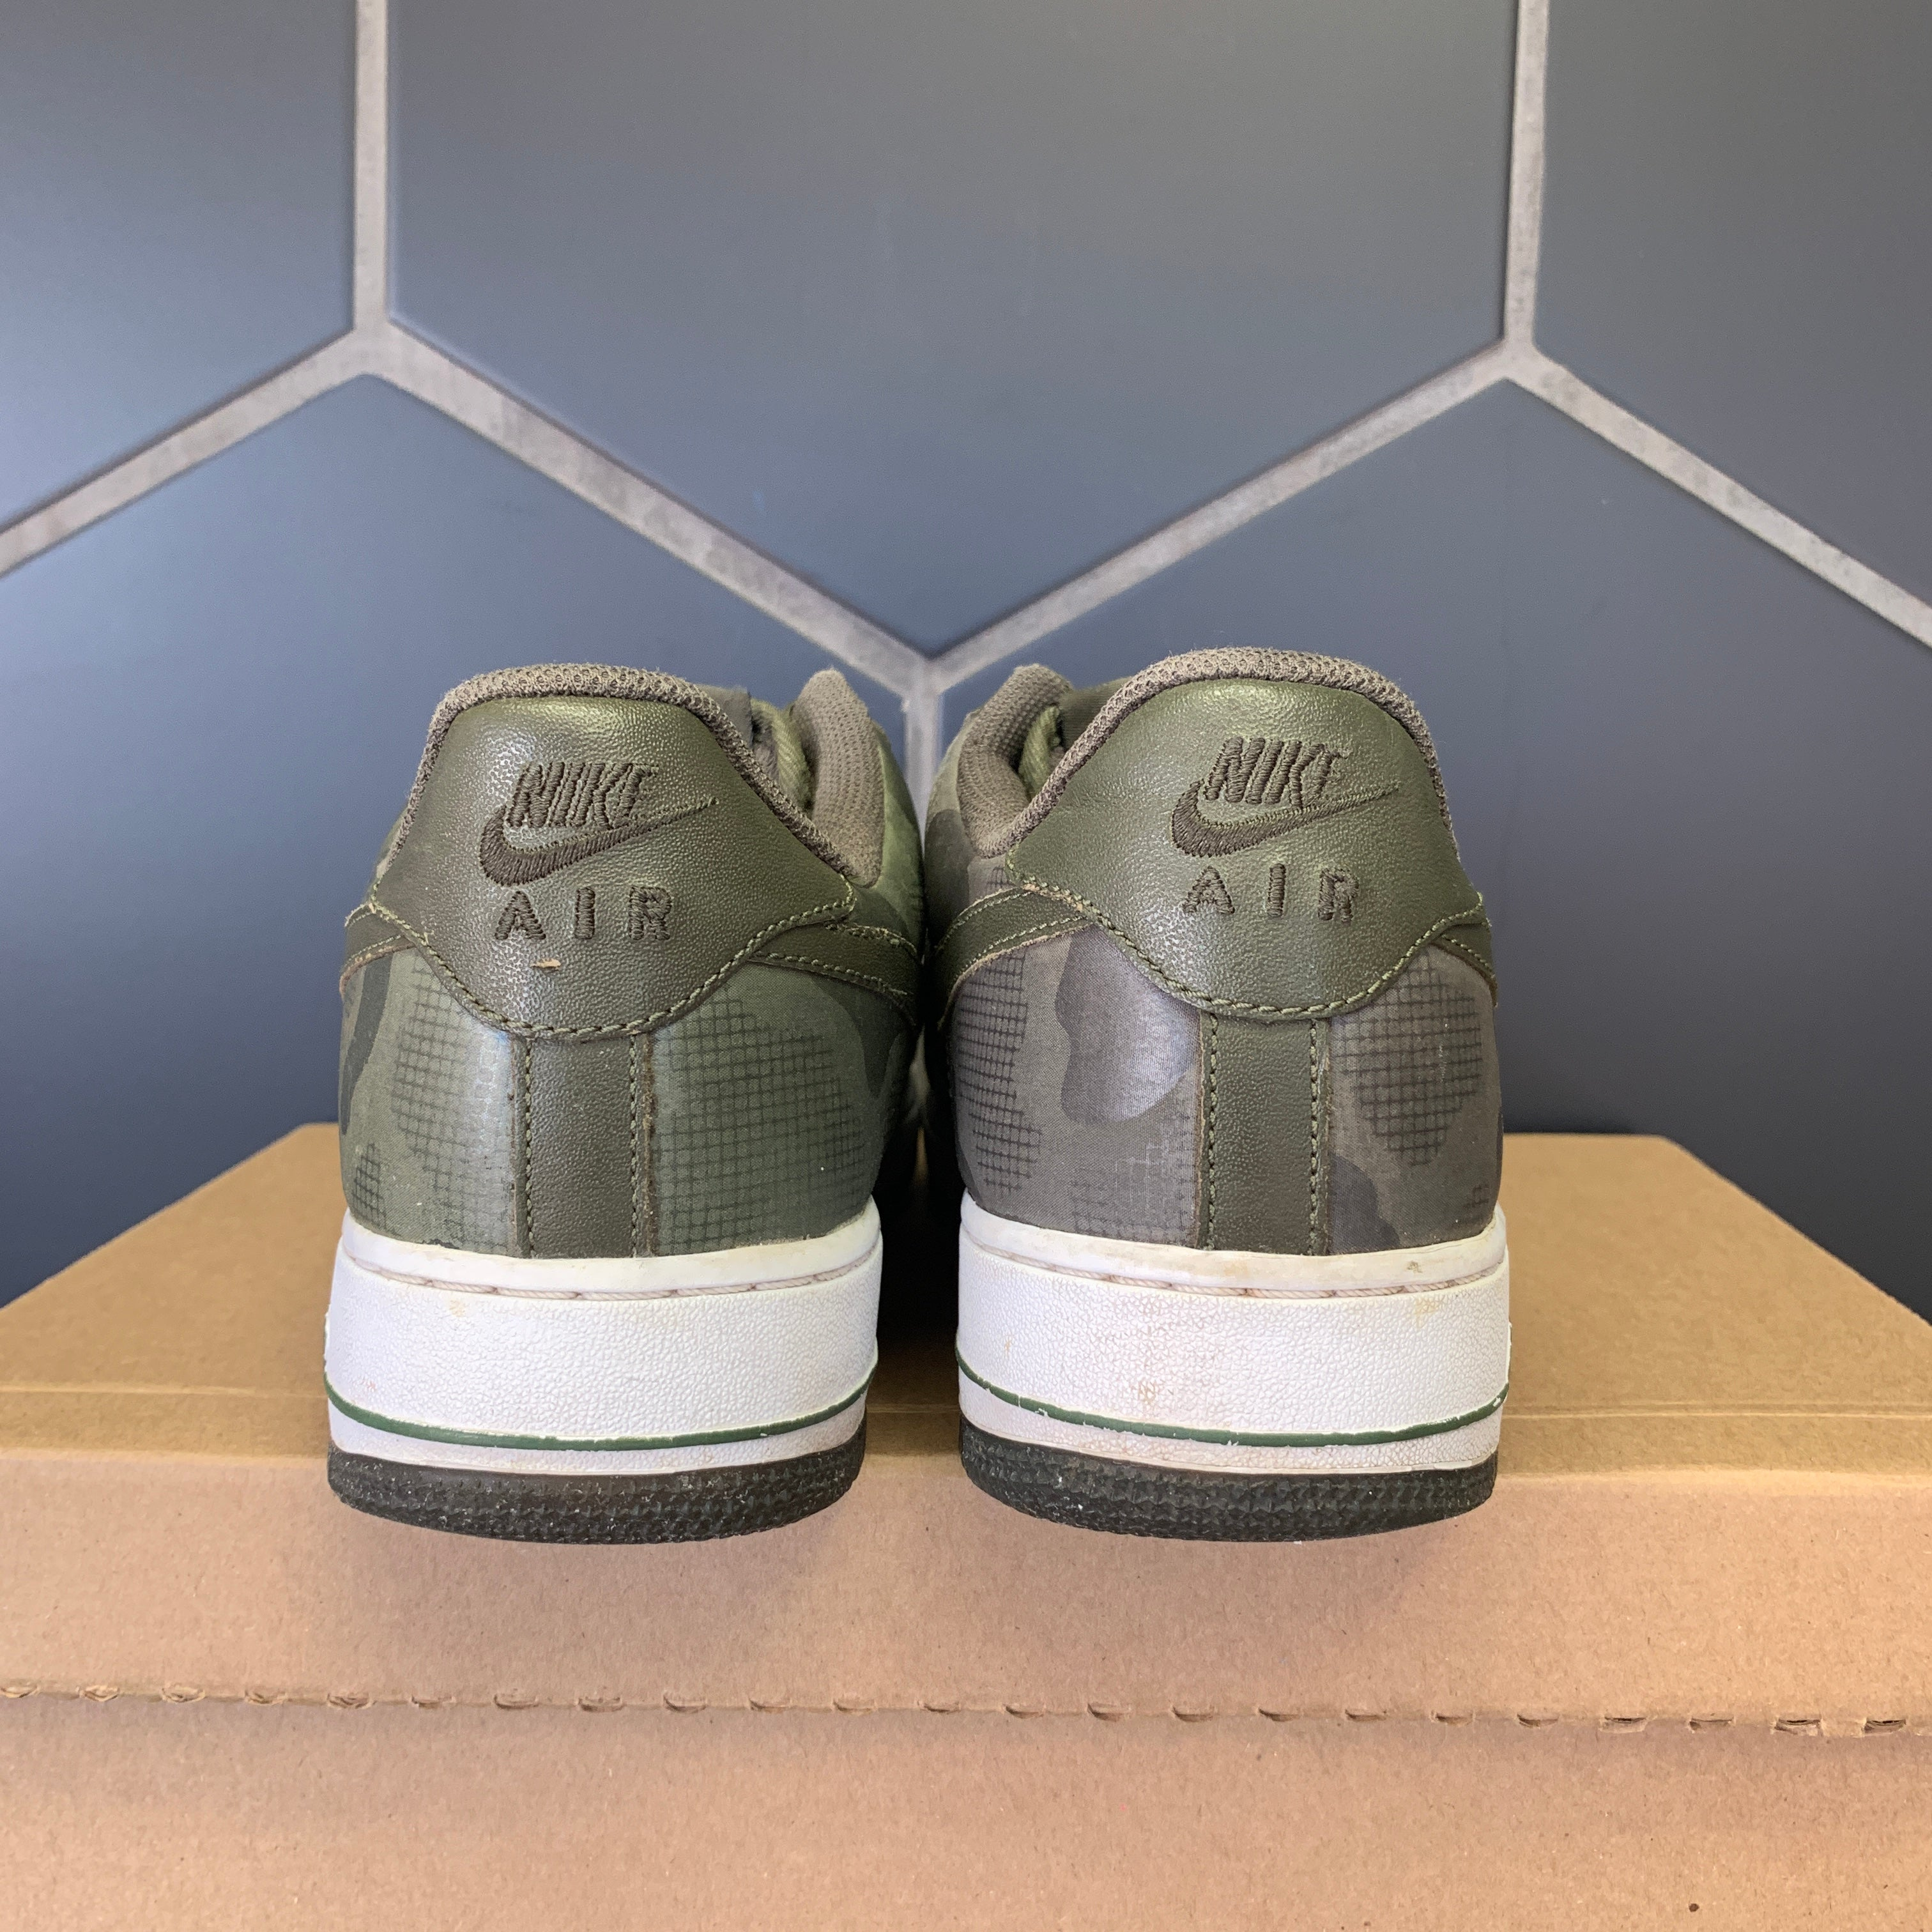 Used W/O Box! Nike Air Force 1 Low Green Camo White Shoe Size 8